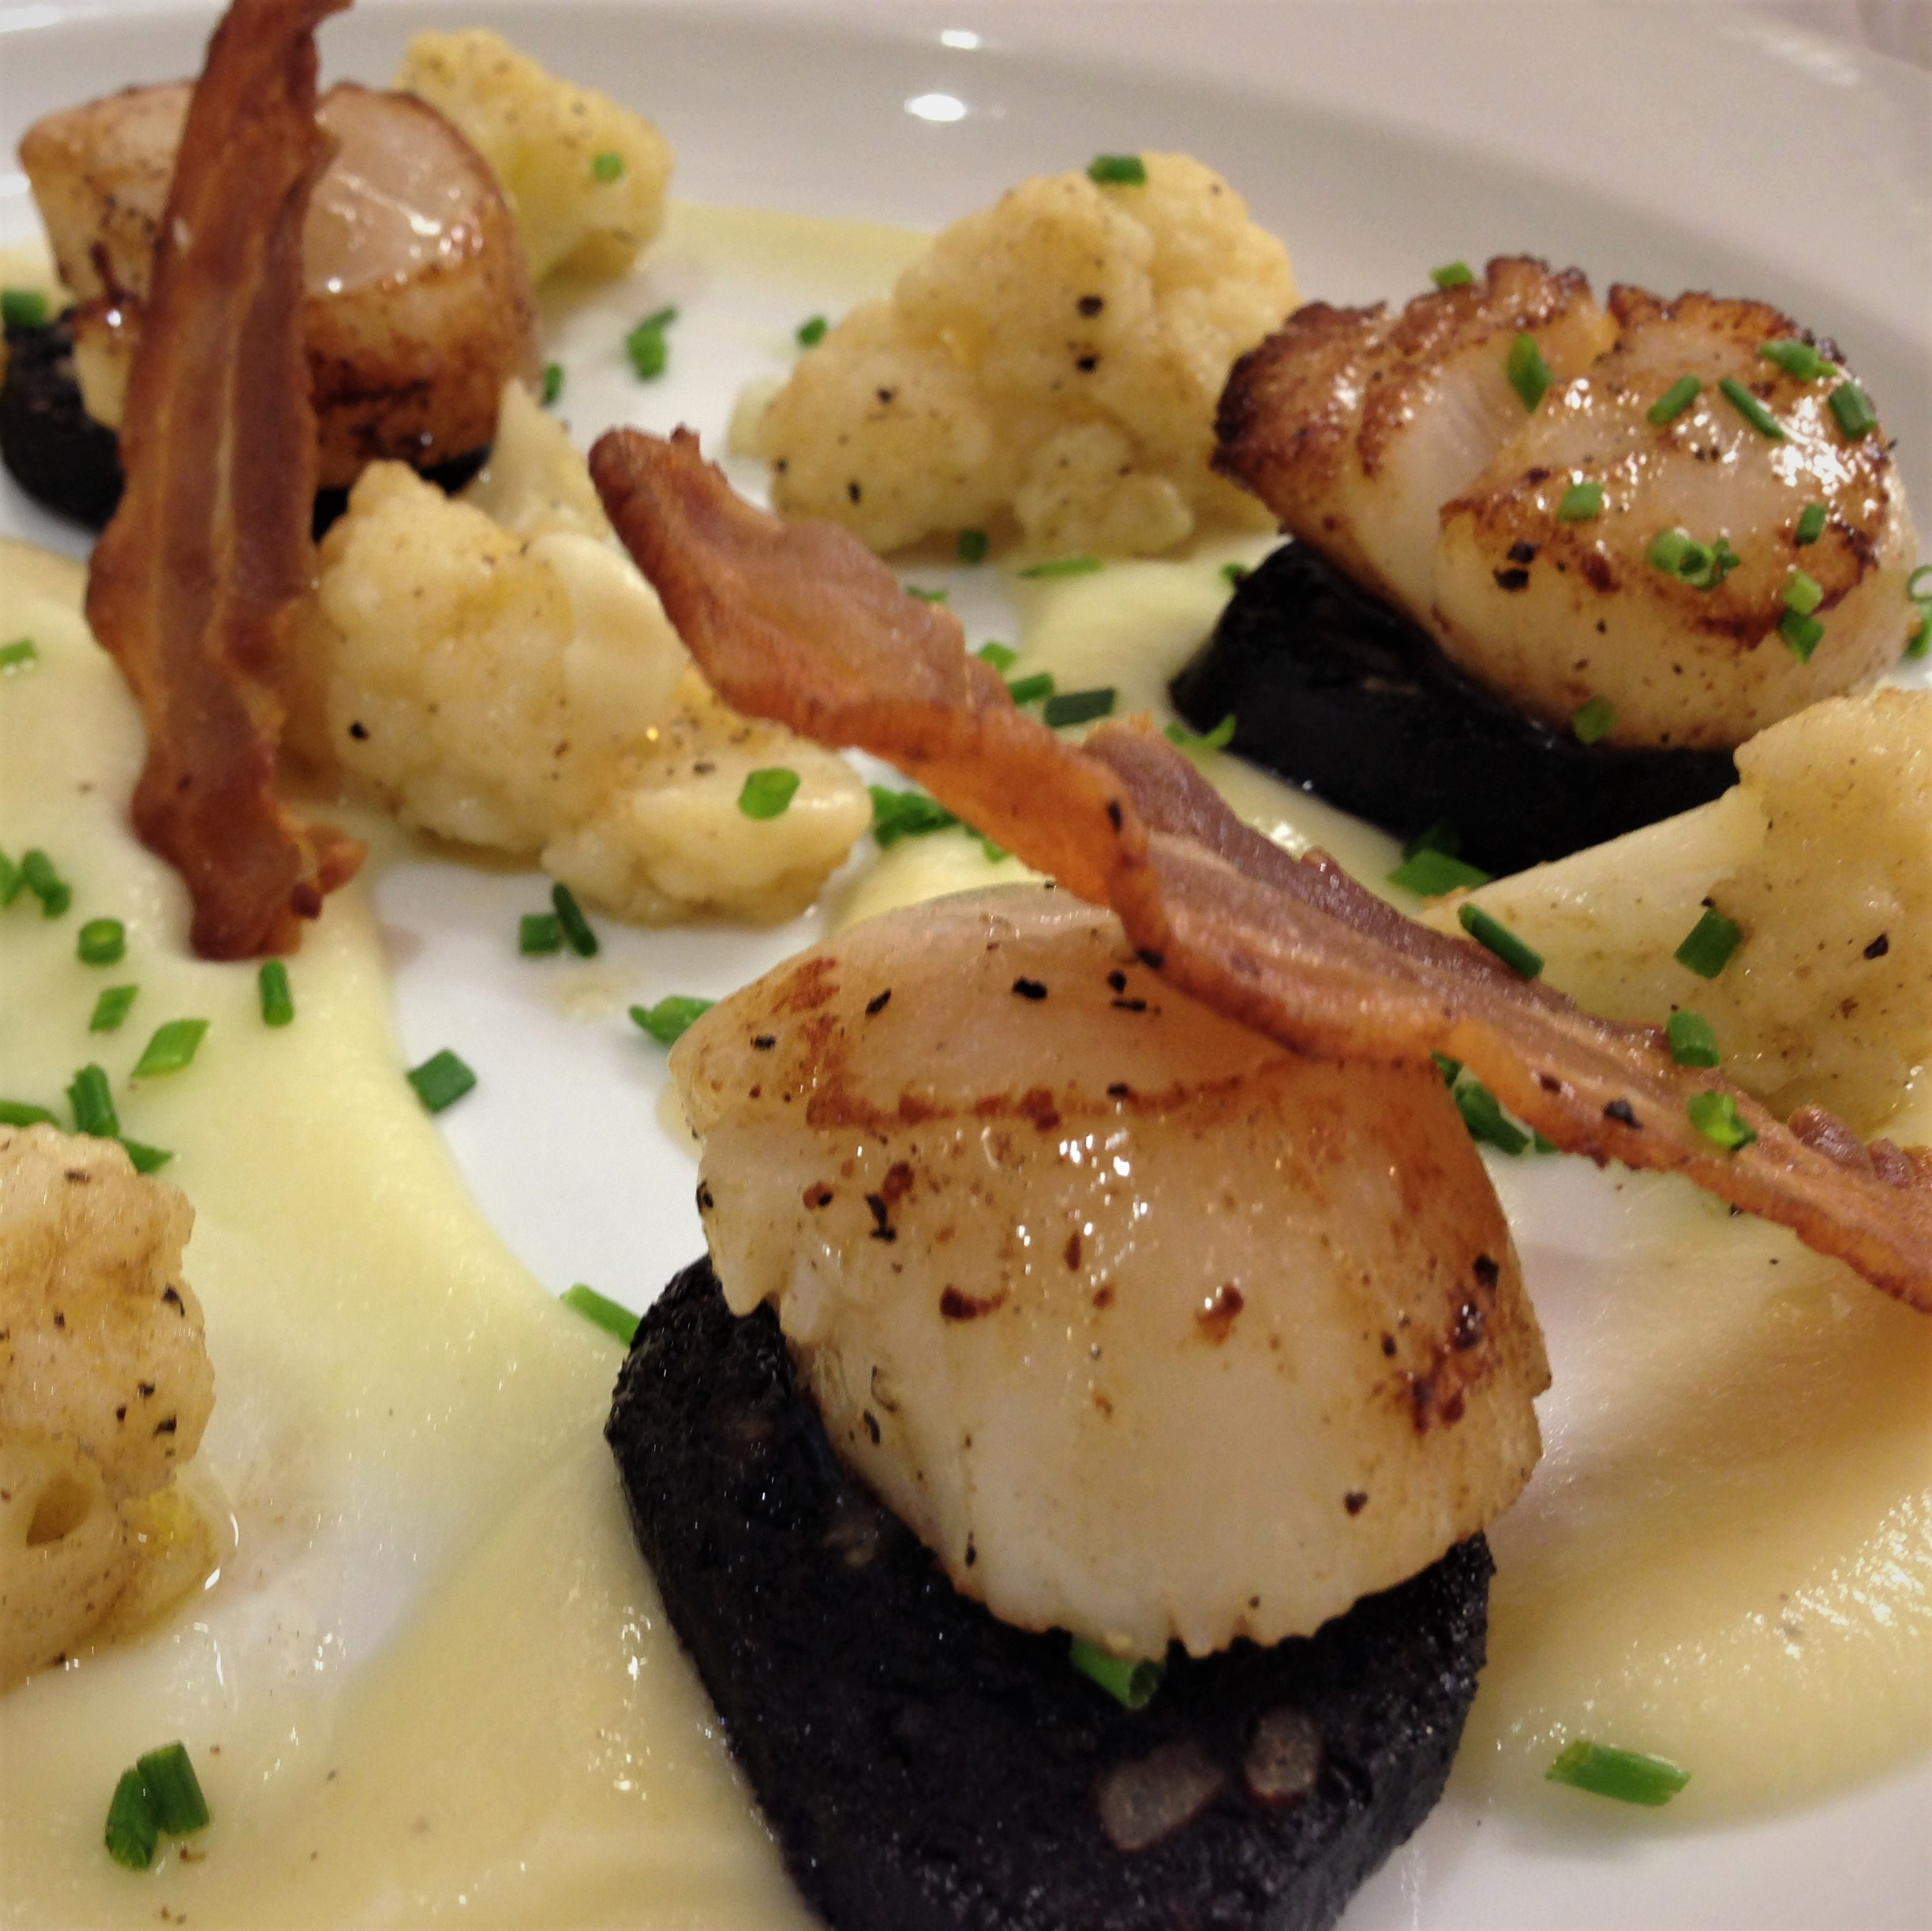 Lighthouse Scallops with Black Pudding